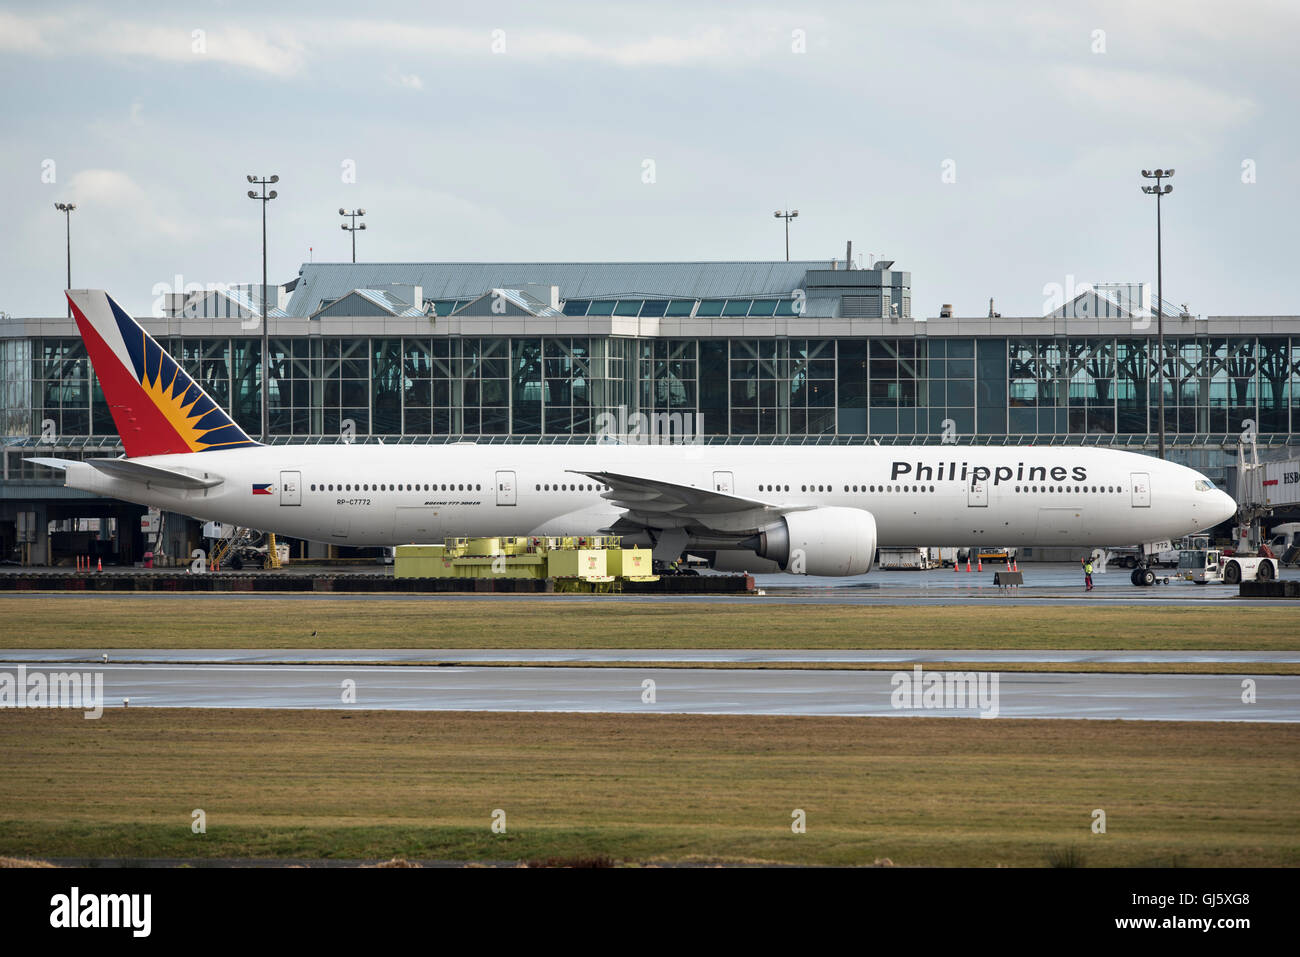 Philippines airline Boeing 777-300 taxiing to Vancouver International airport terminal. - Stock Image